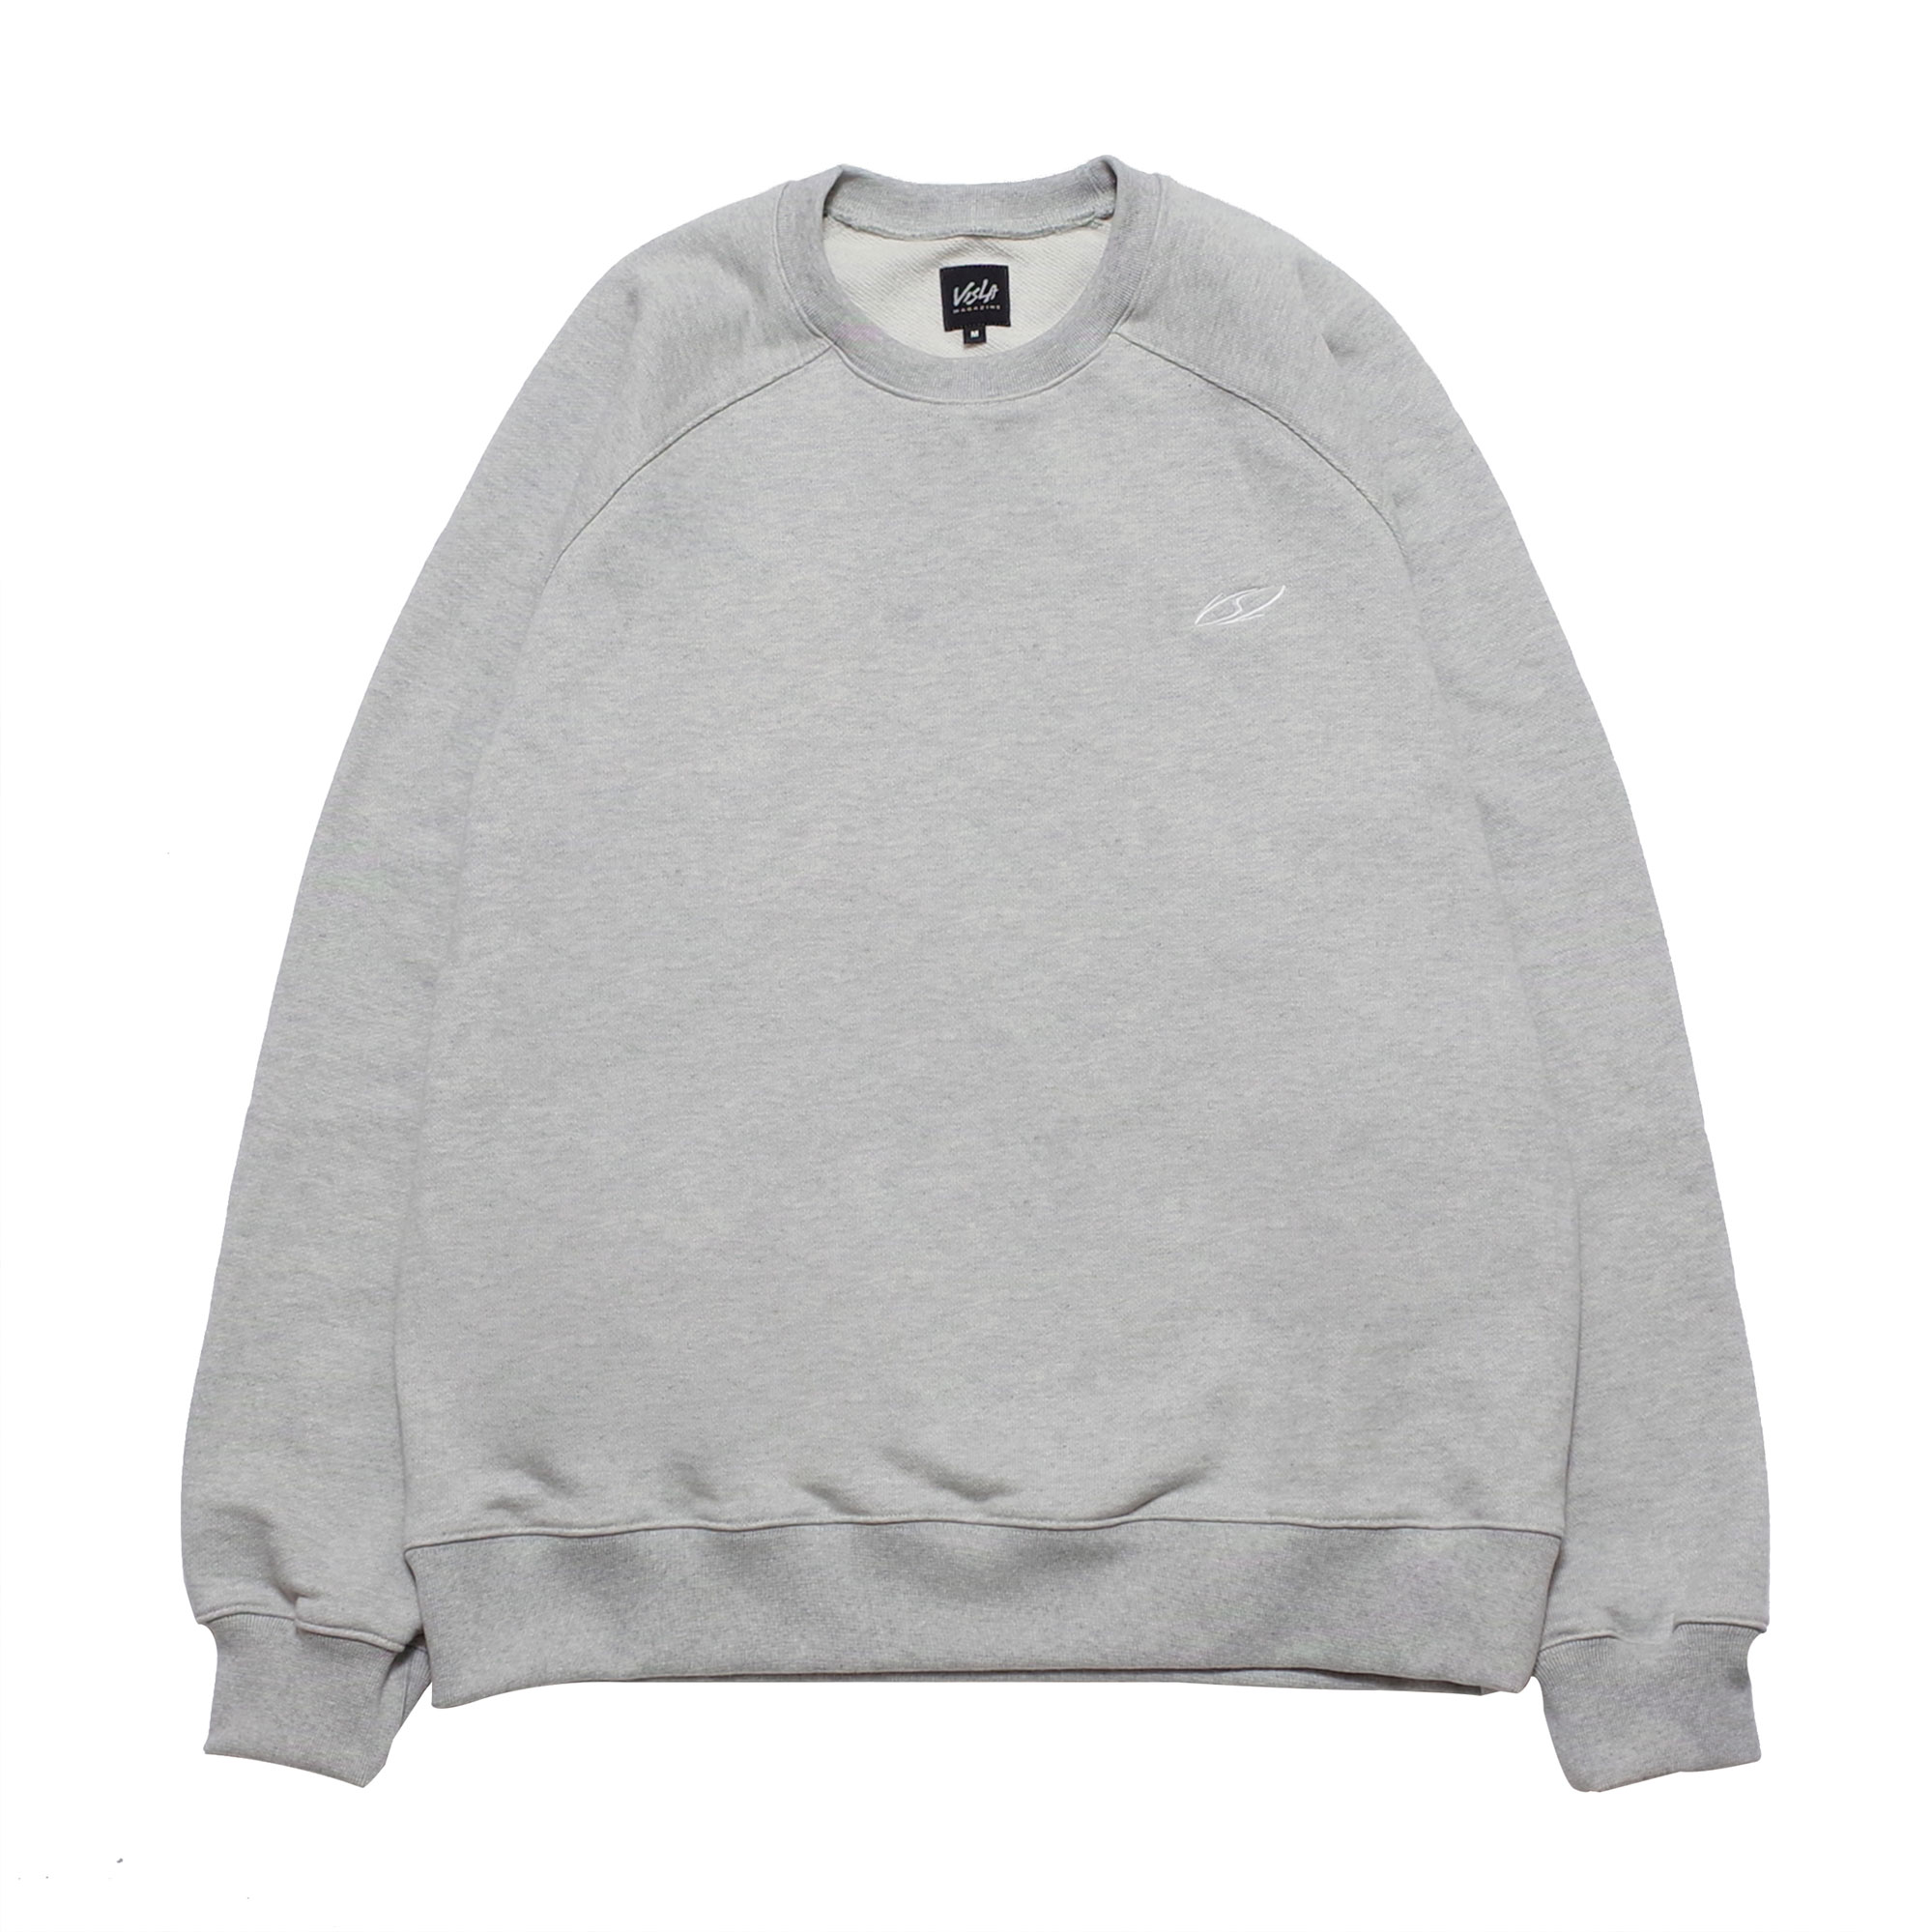 VSL SWEAT SHIRT - GRAY